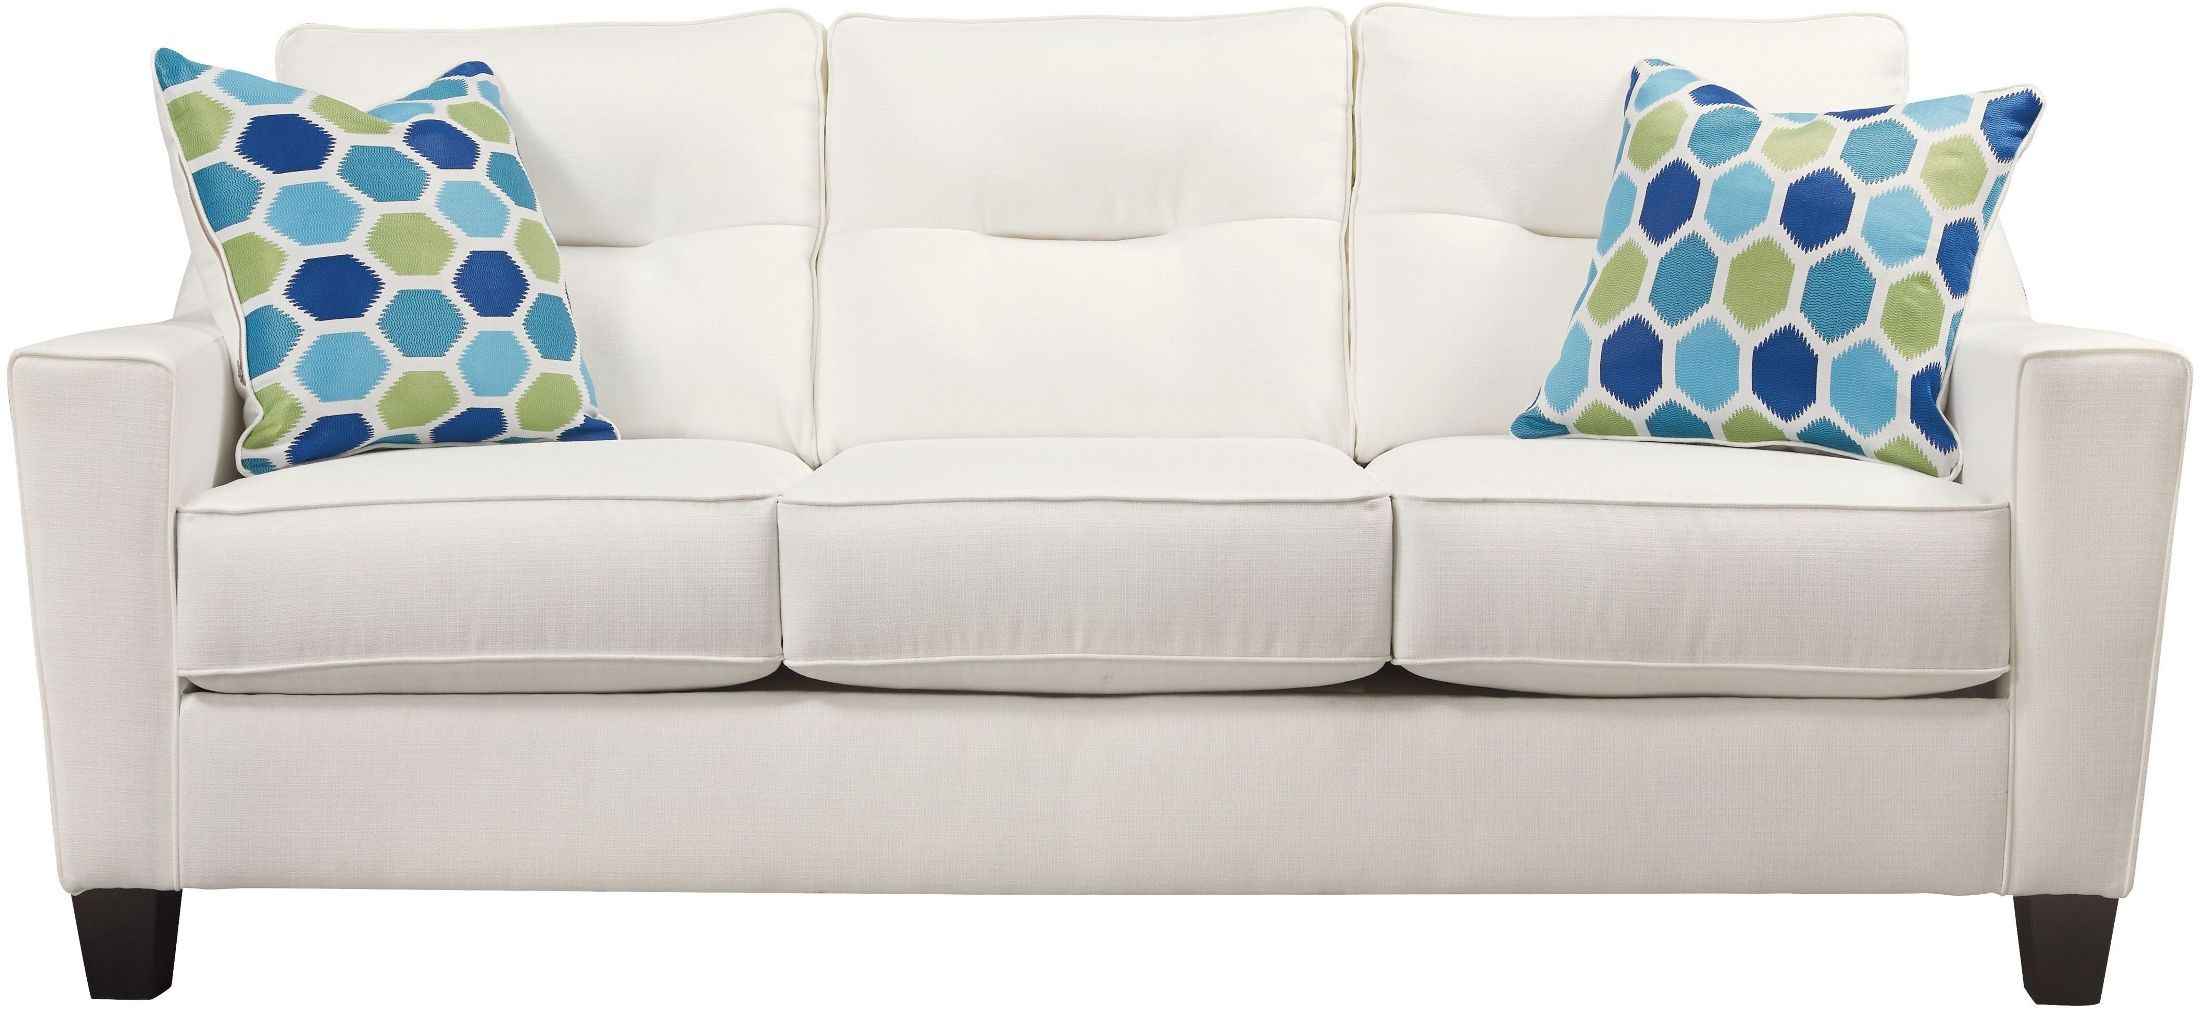 Forsan Nuvella White Sofa From Ashley Coleman Furniture